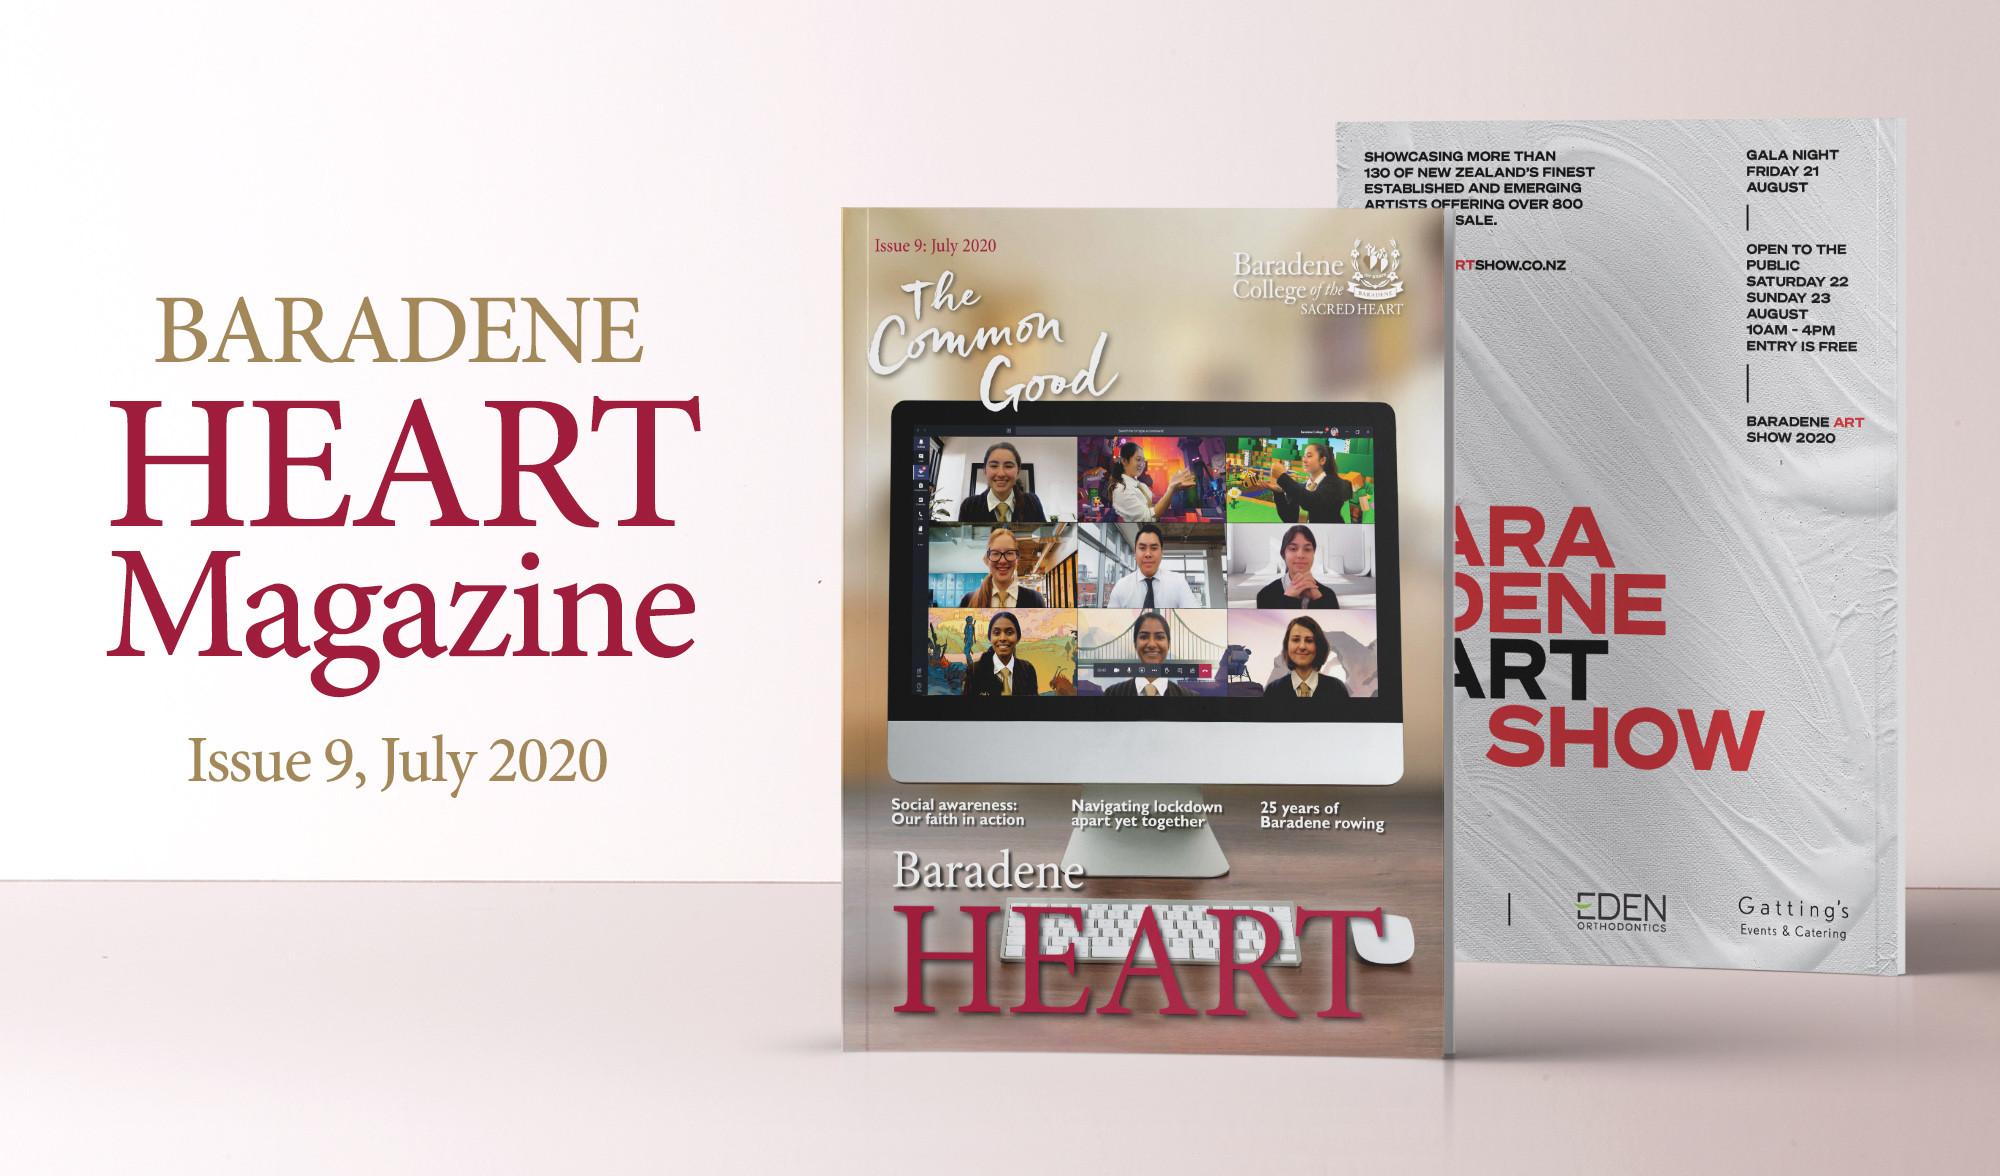 Baradene Heart Magazine July 2020 out now!